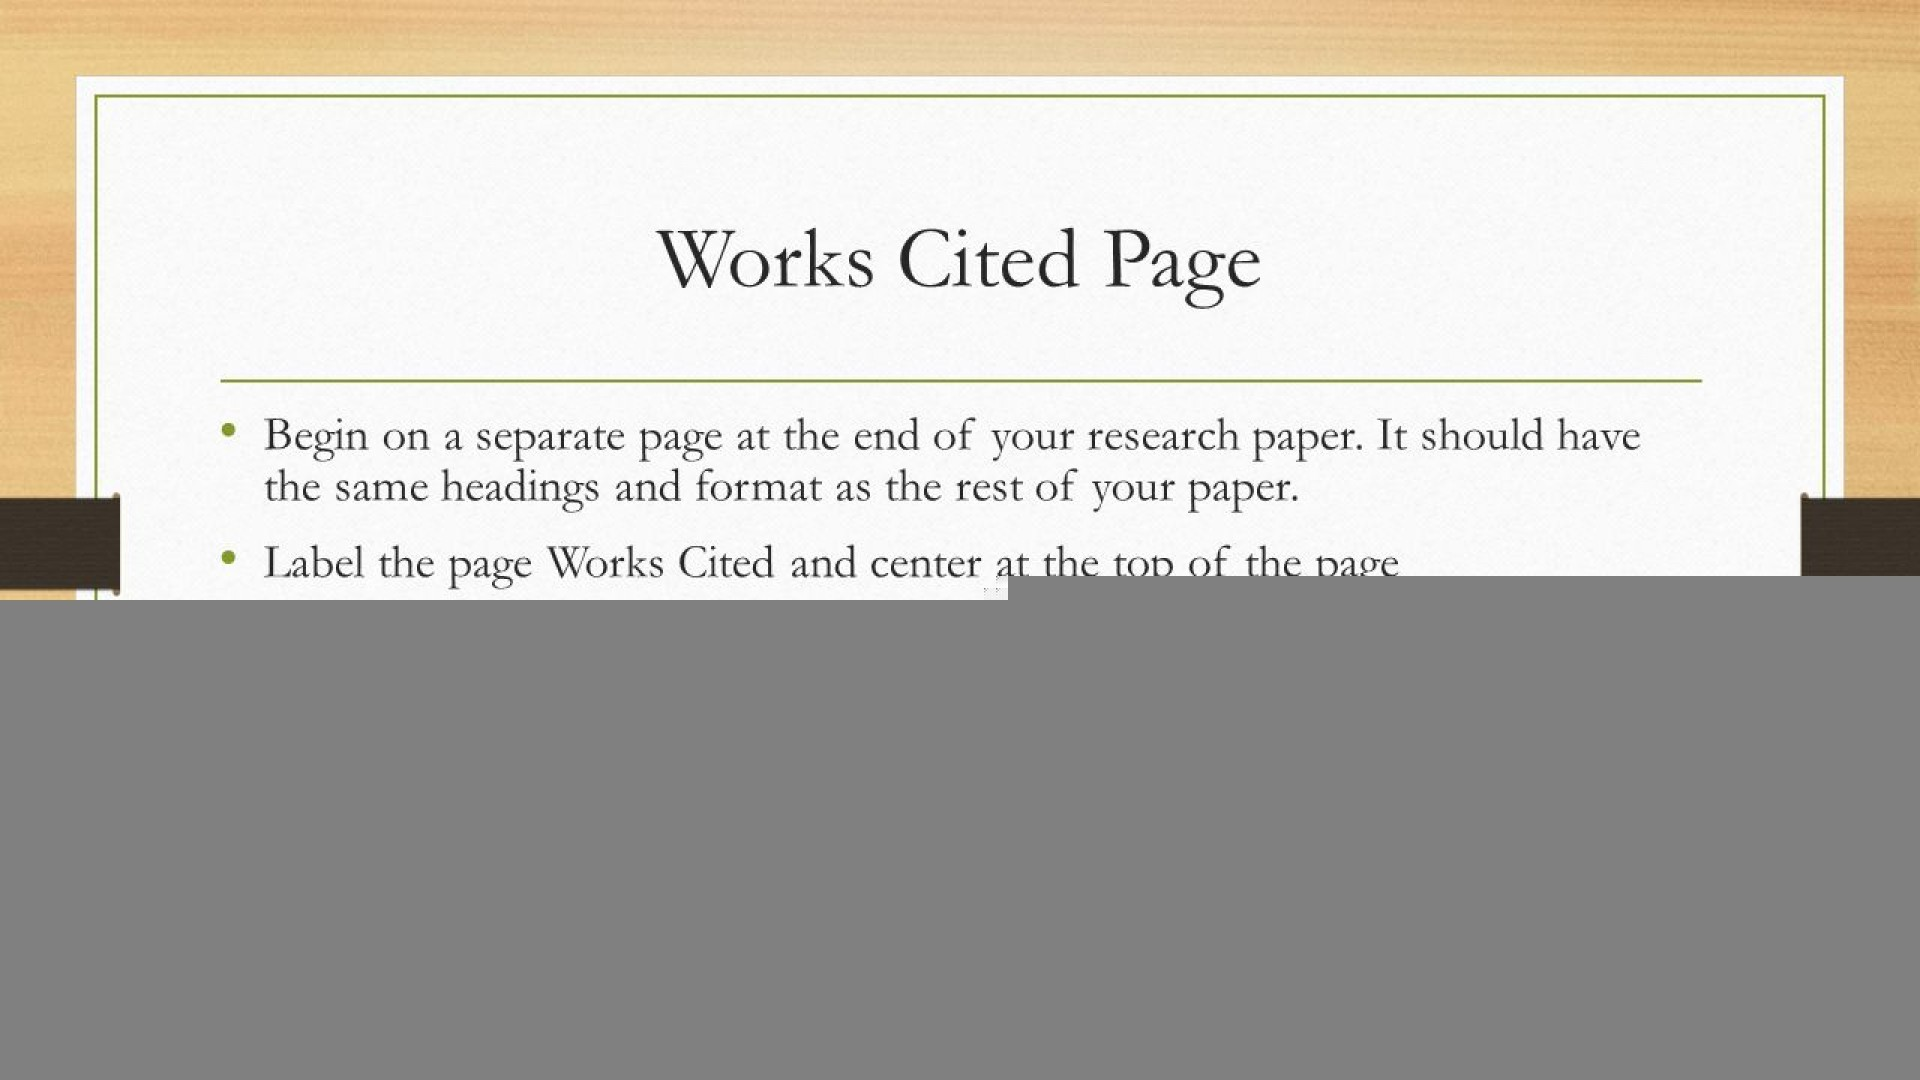 016 Do Works Cited Page Research Paper Slide 16 Unique Examples Mla Format 1920